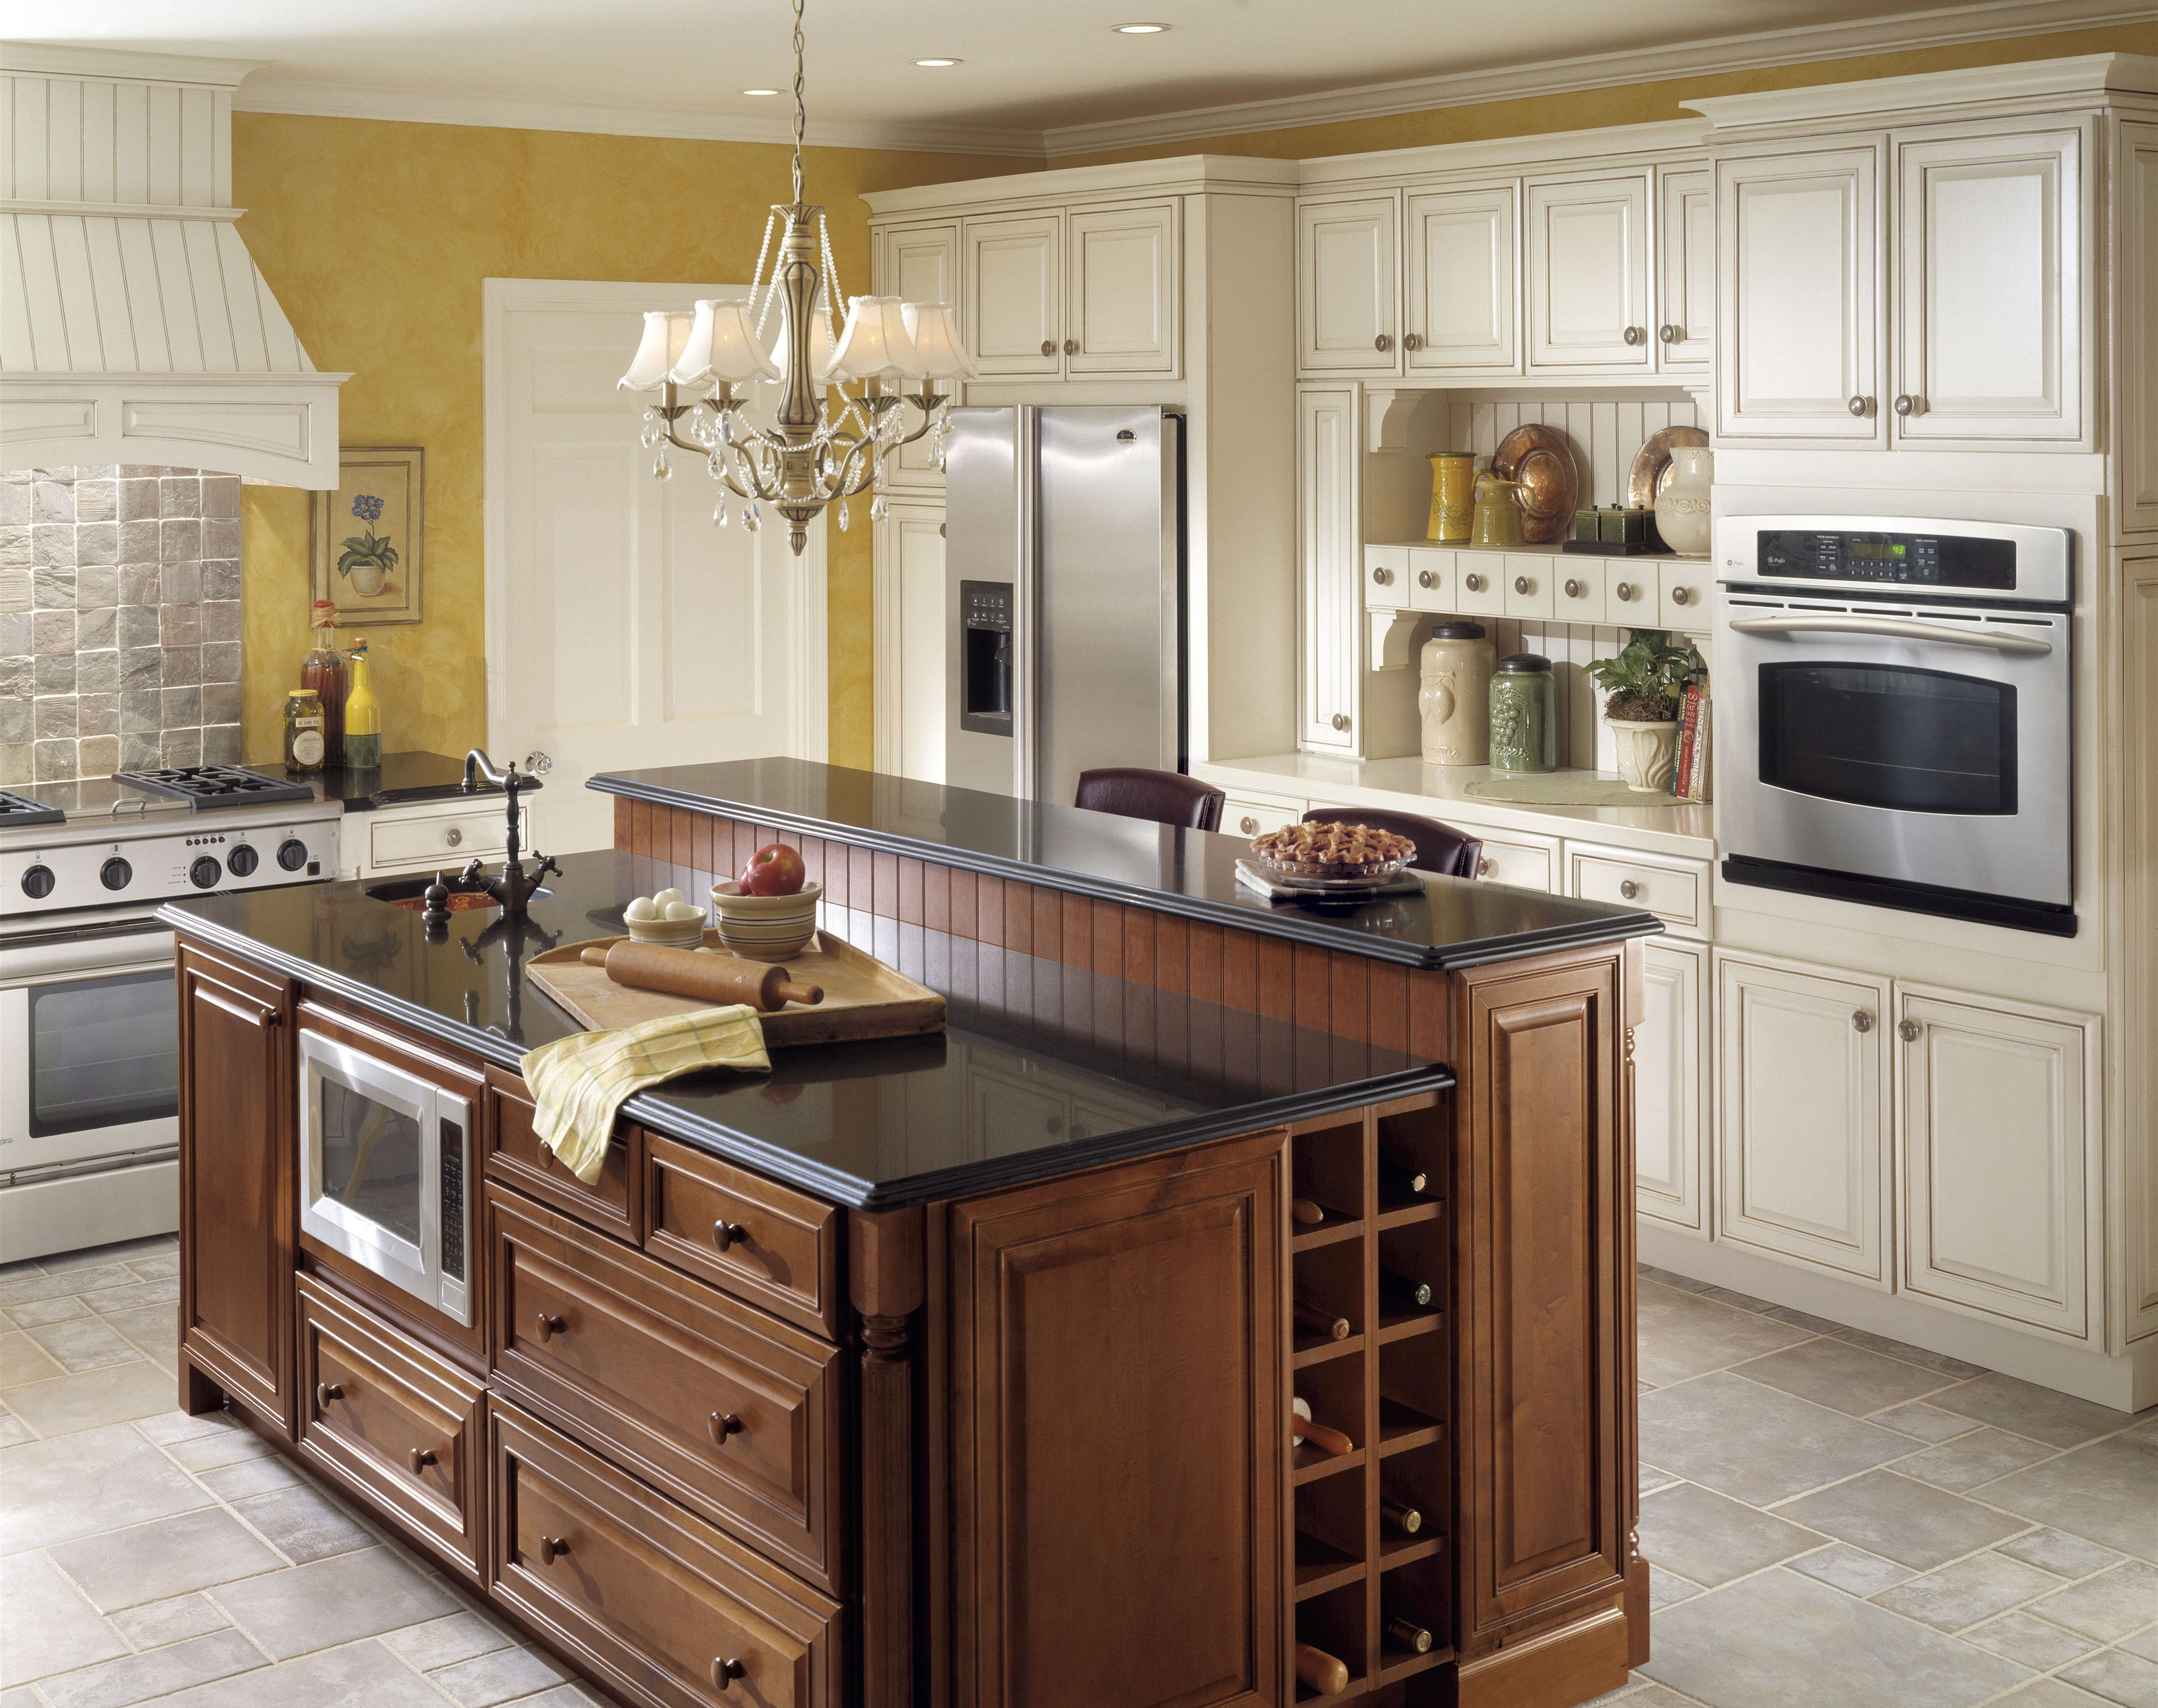 Home Depot Unfinished Kitchen Cabinets Paint Rustic European Home Decor En In 2020 Kitchen Cabinets Home Depot Kitchen Cabinets Prices Unfinished Kitchen Cabinets